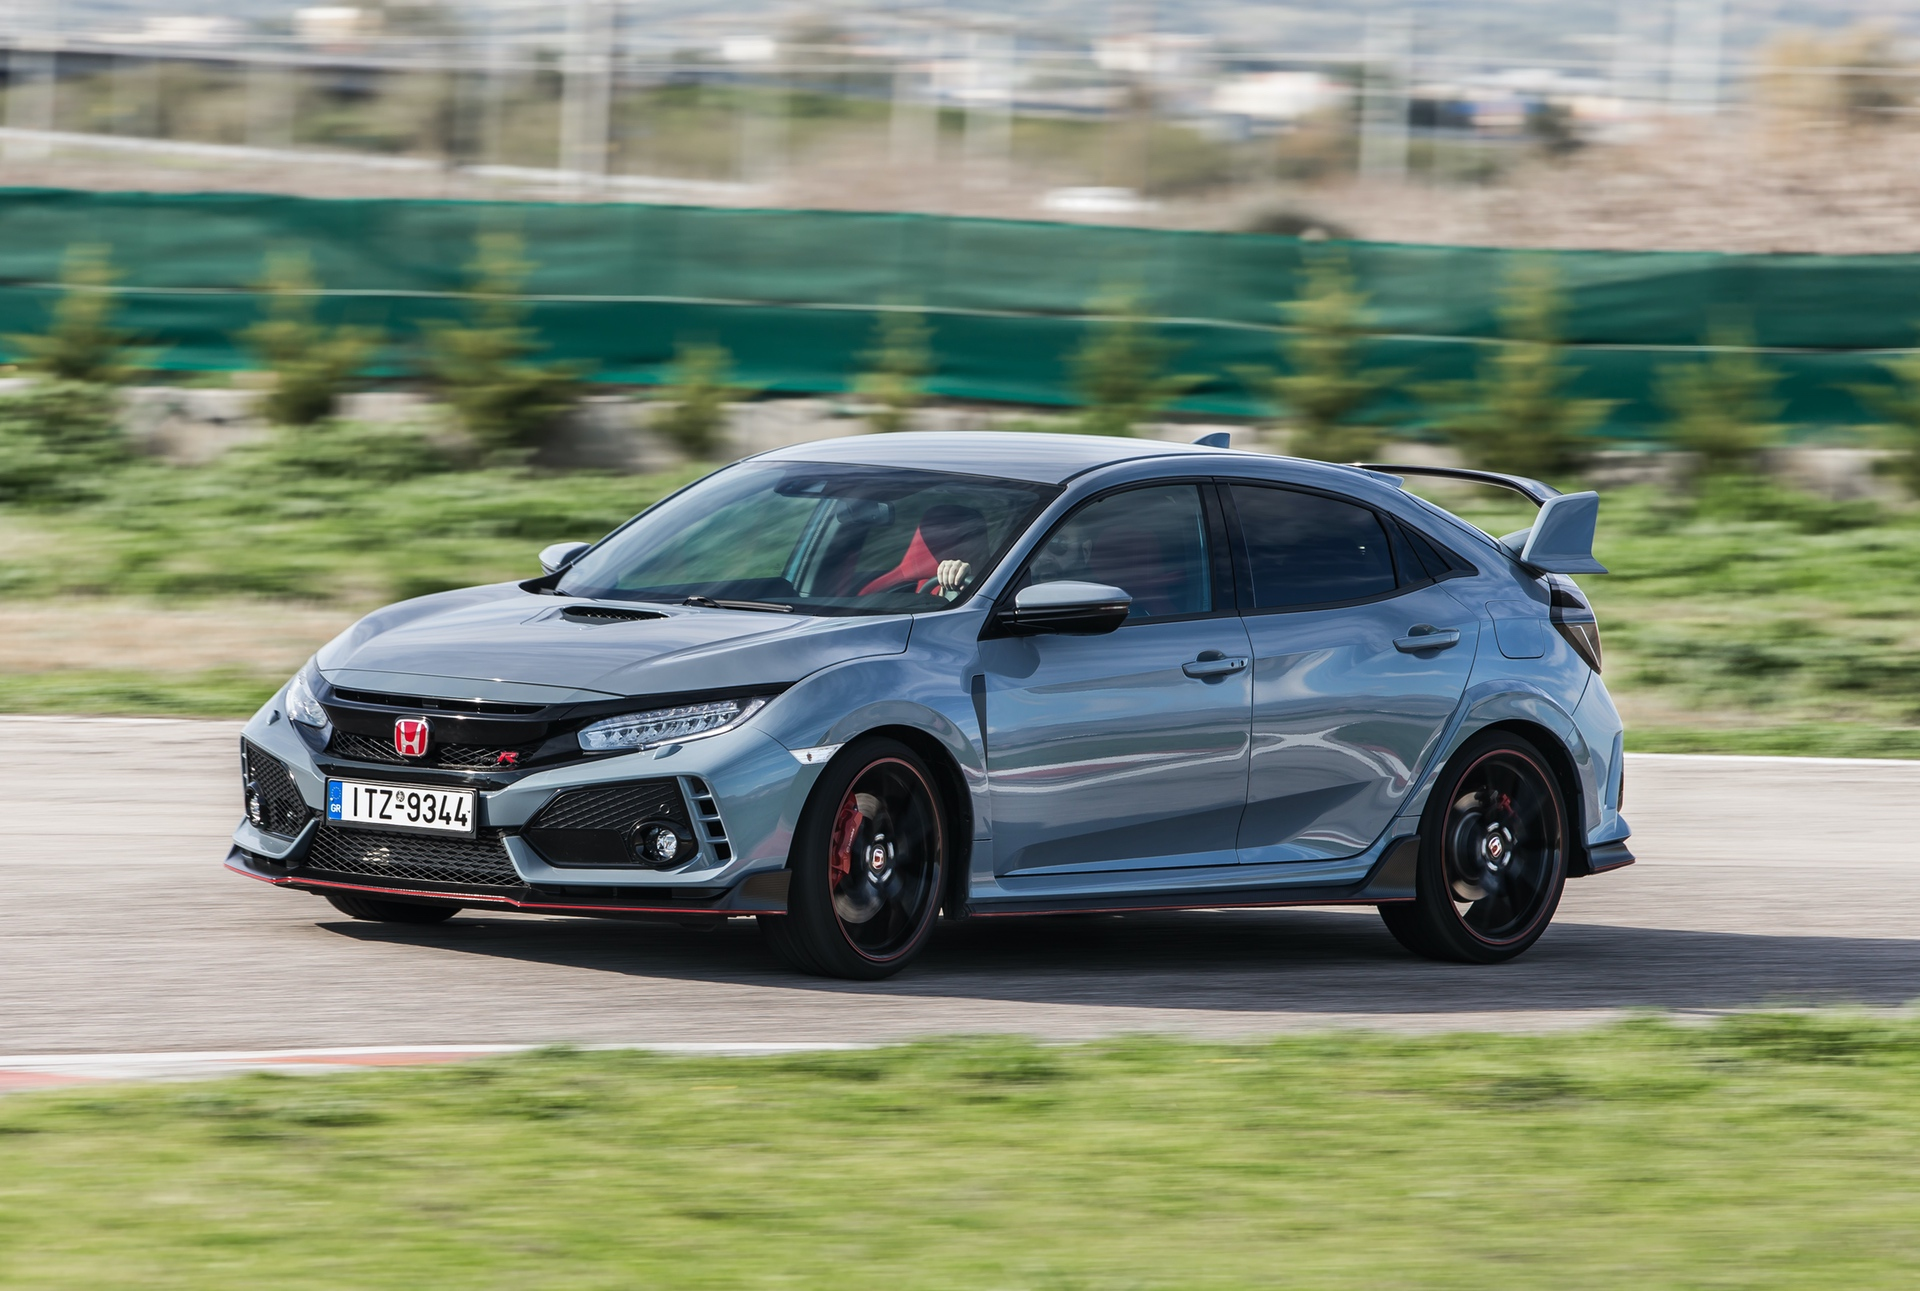 Track_Test_Honda_Civic_Type_R_085